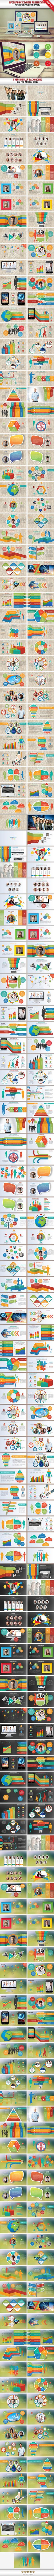 Infographic Keynote Presentation Update V.1 - Keynote Templates Presentation Templates